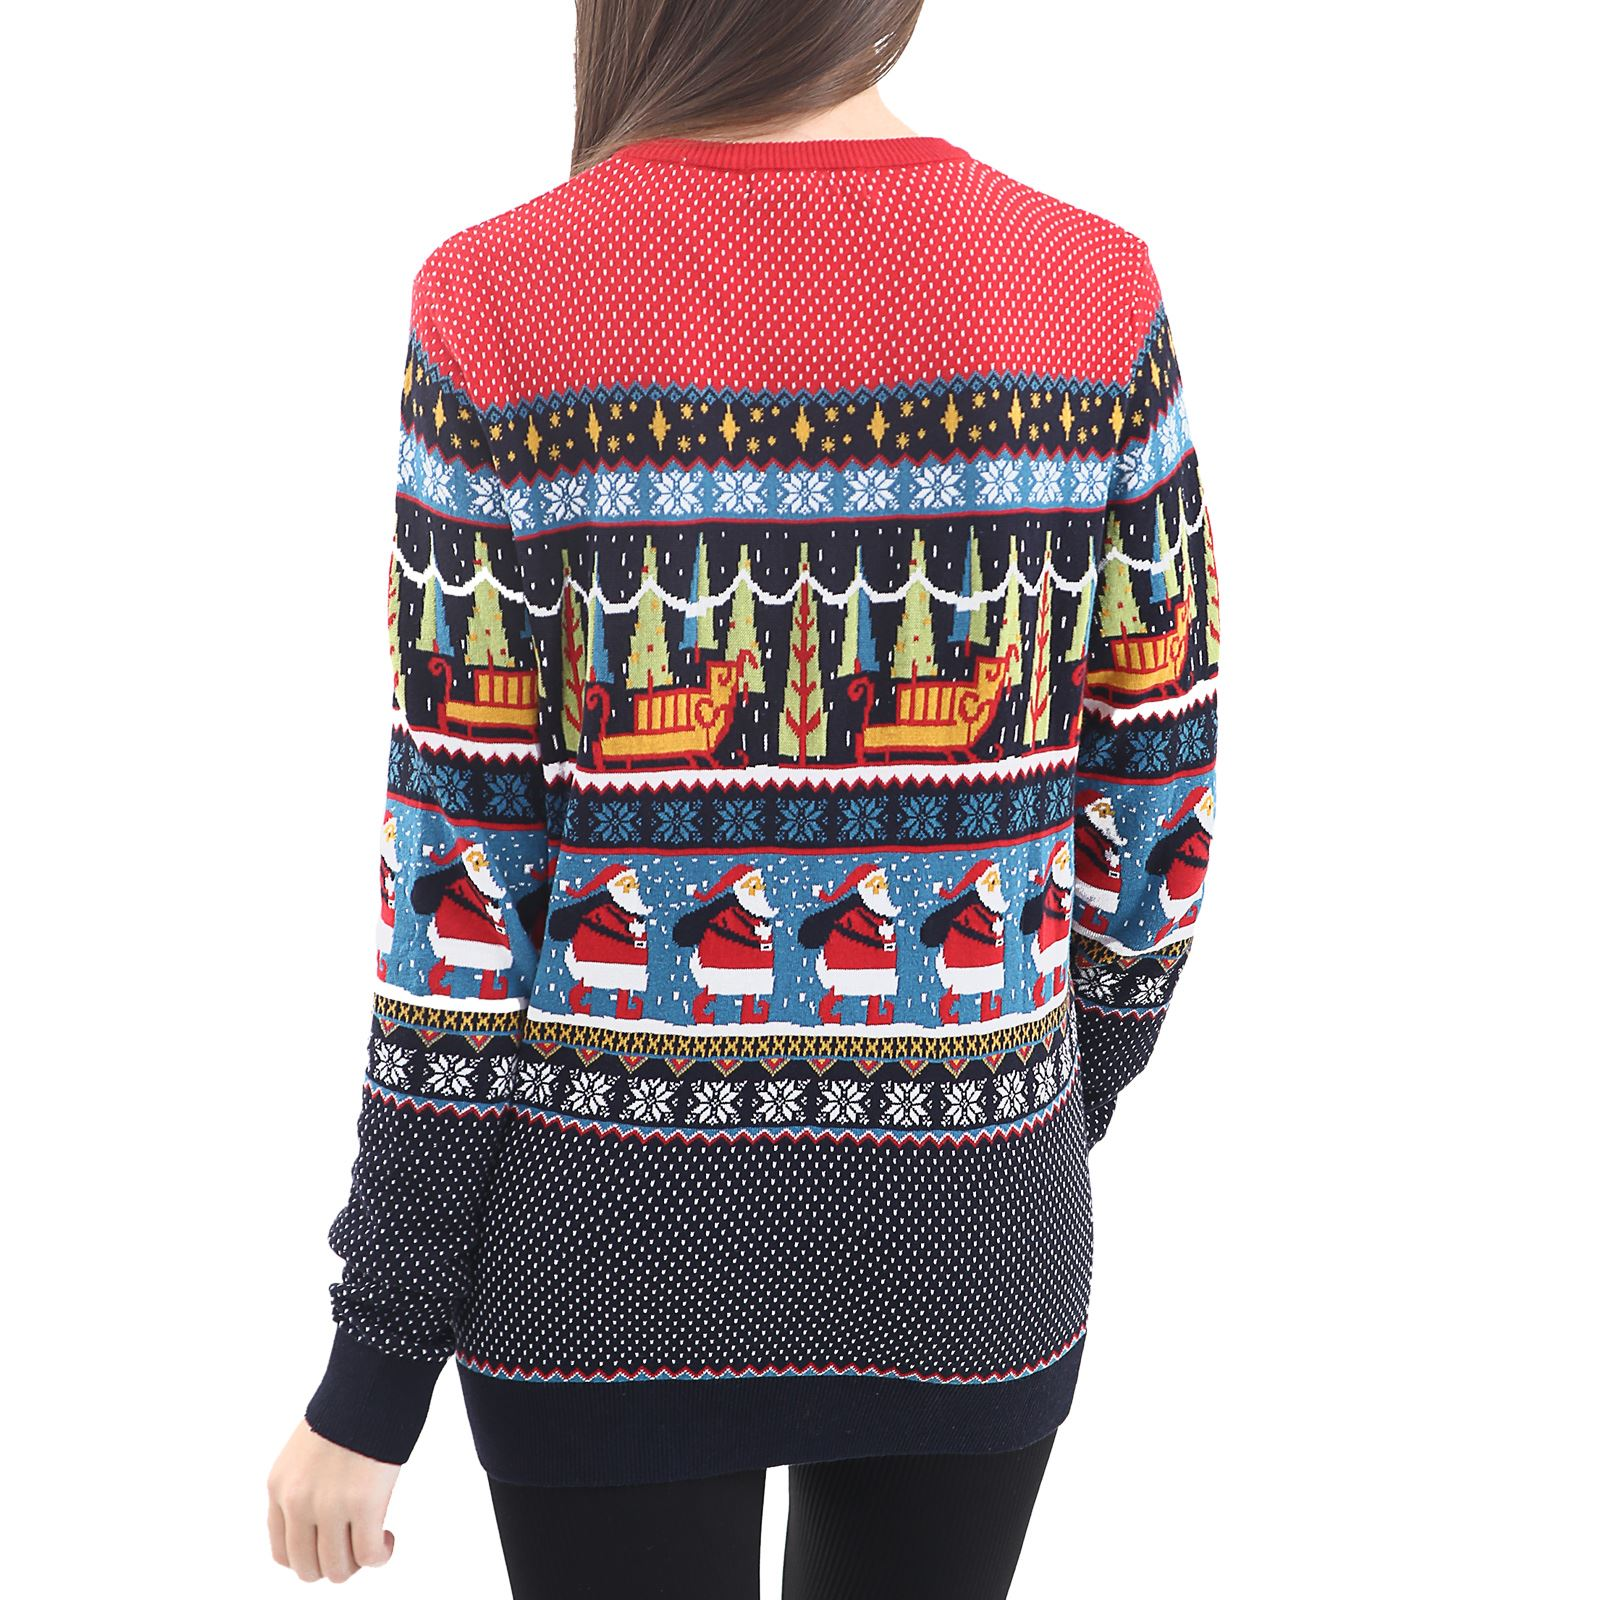 Mens-Ladies-Ex-Store-Matching-Christmas-Sweater-Jumper-Sweatshirt-Xmas-His-Hers thumbnail 19